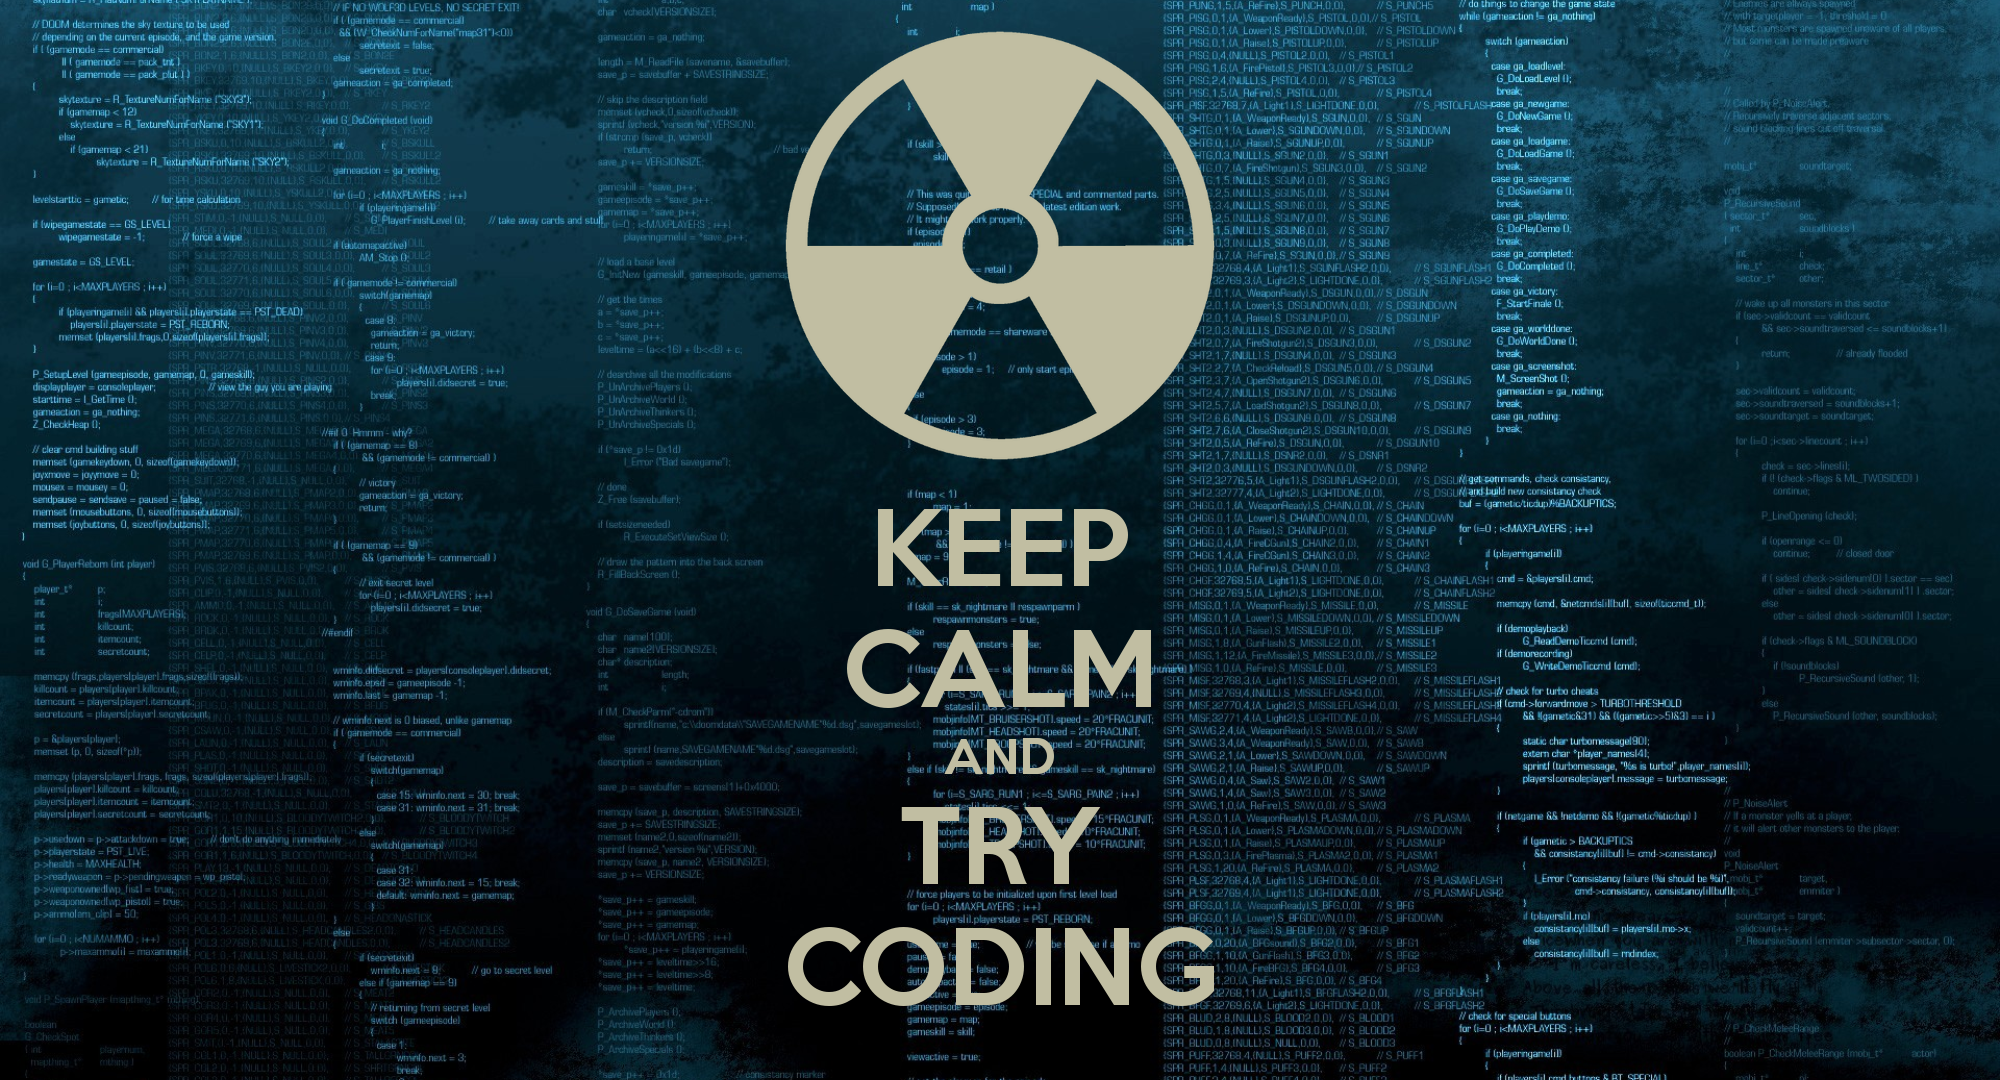 keep-calm-and-try-coding